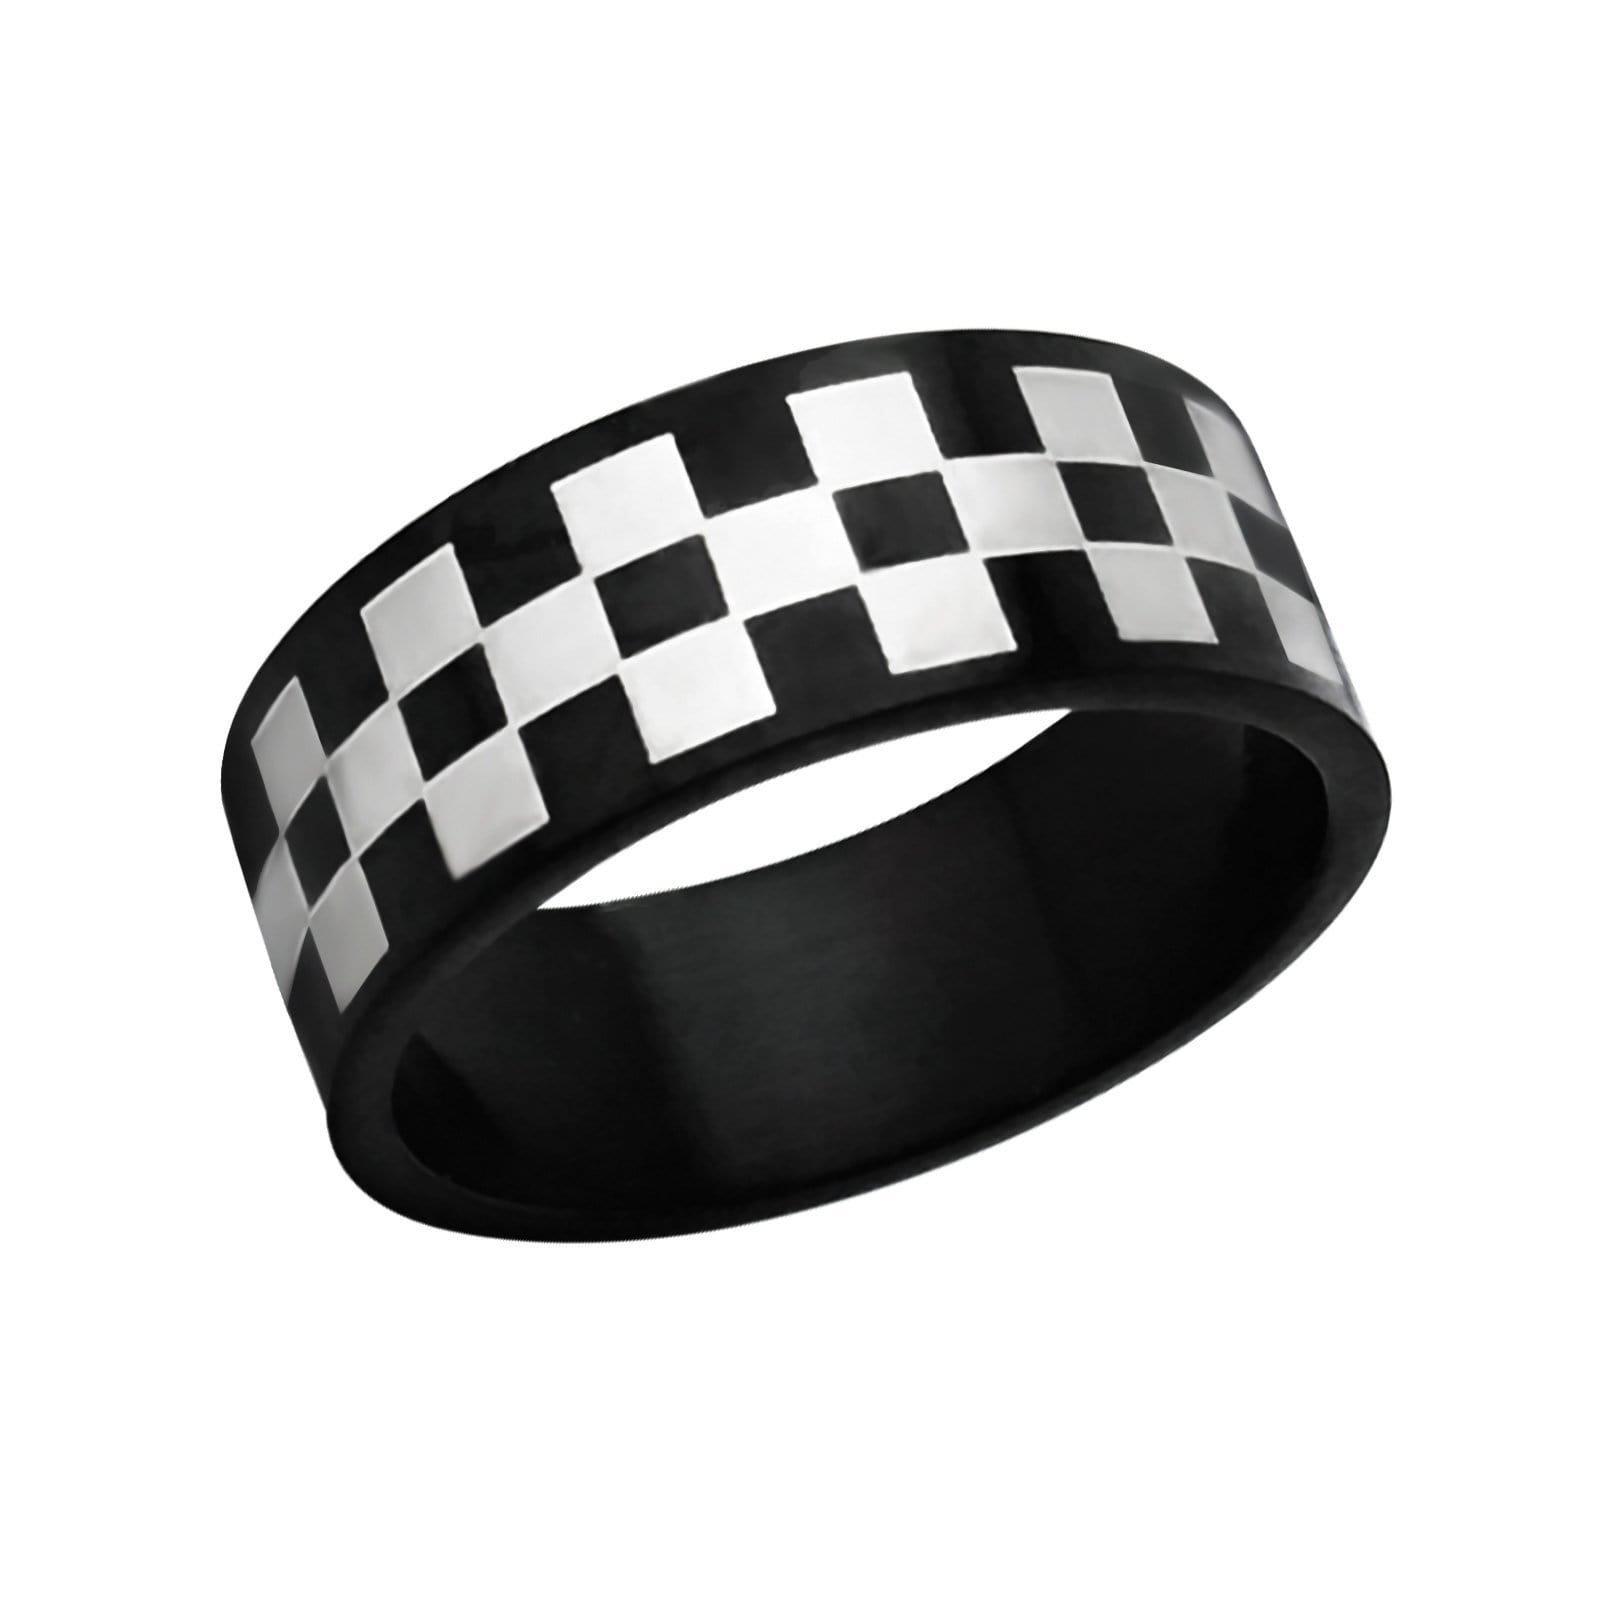 Stainless Steel Chess Board Ring